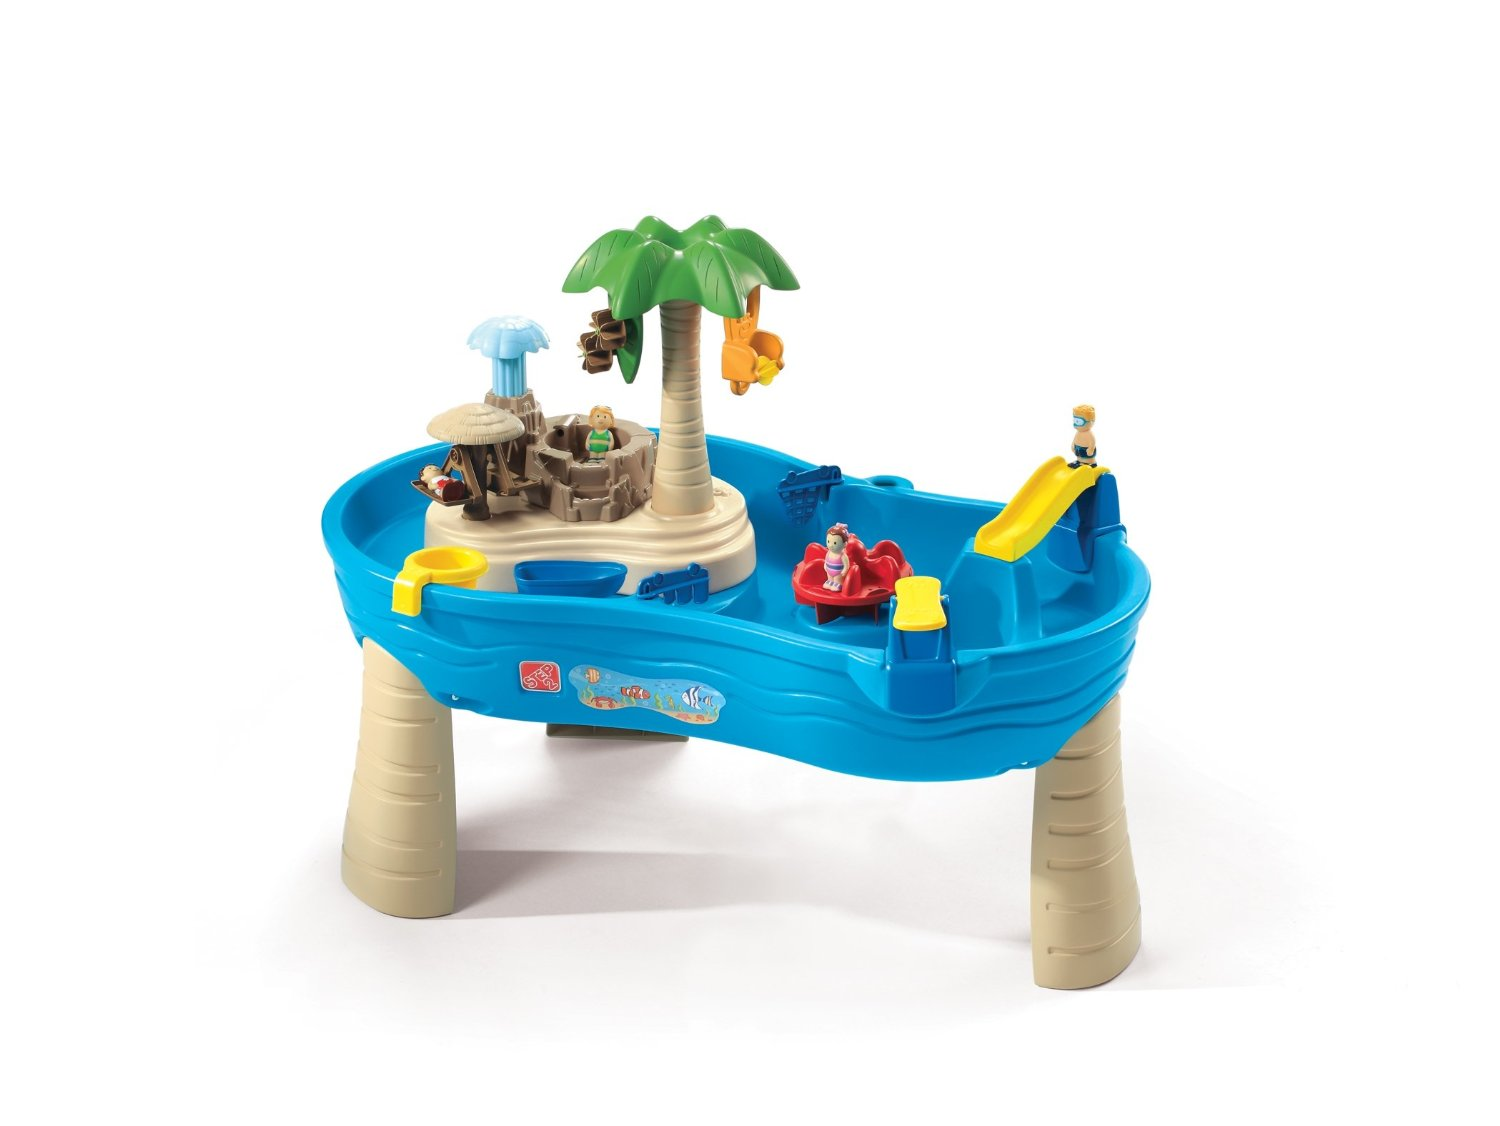 Hunting Toys For Boys : Buy outdoor play equipment online at kids kouch india